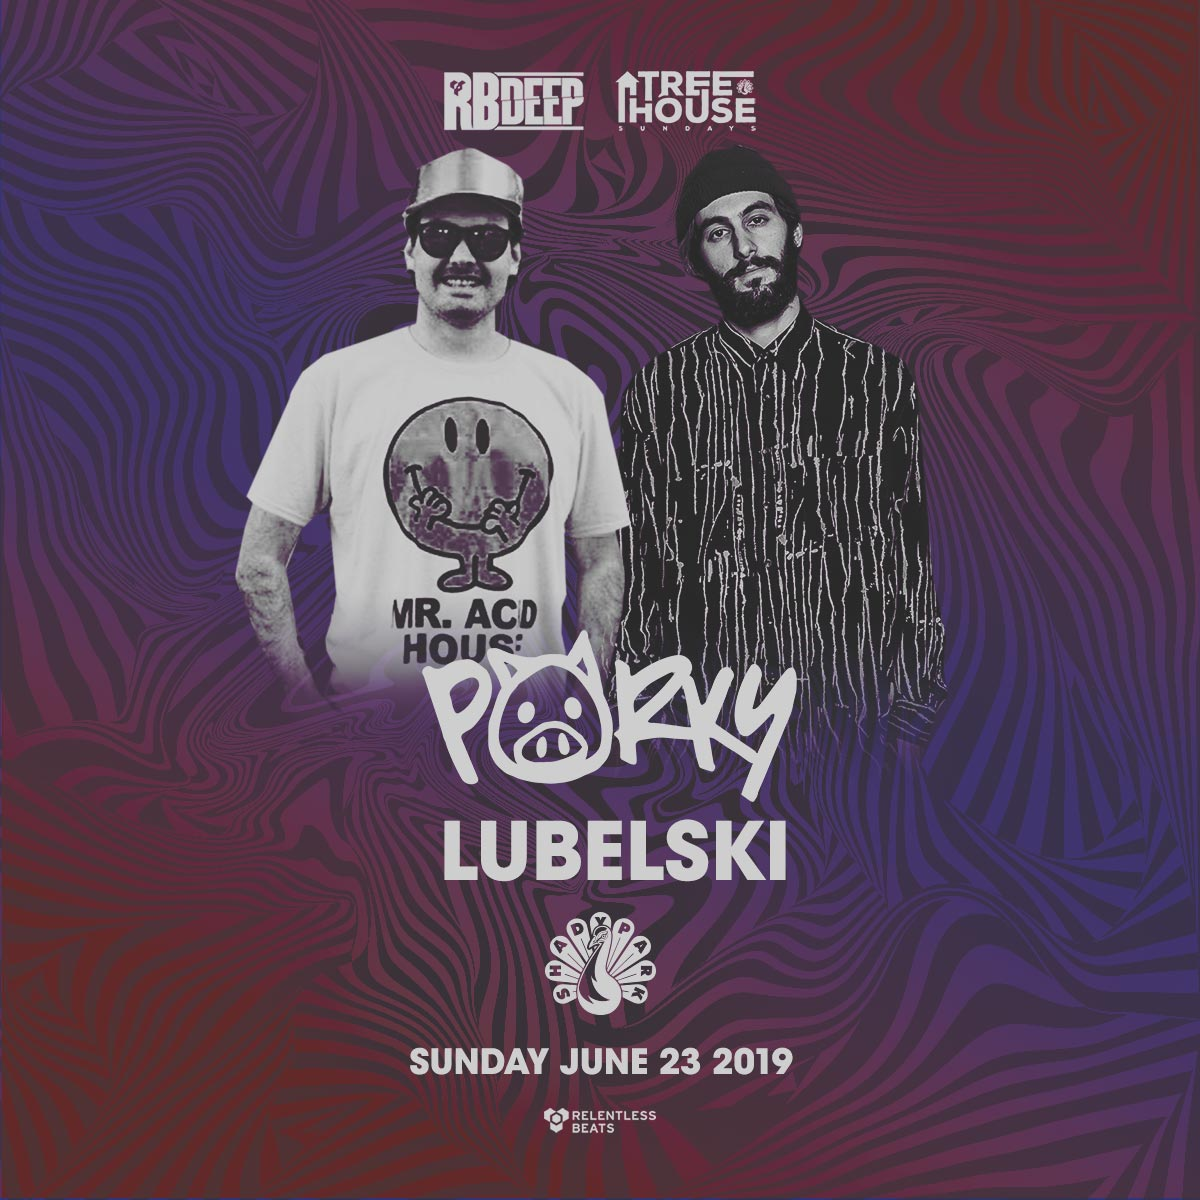 Flyer for Porky & Lubelski